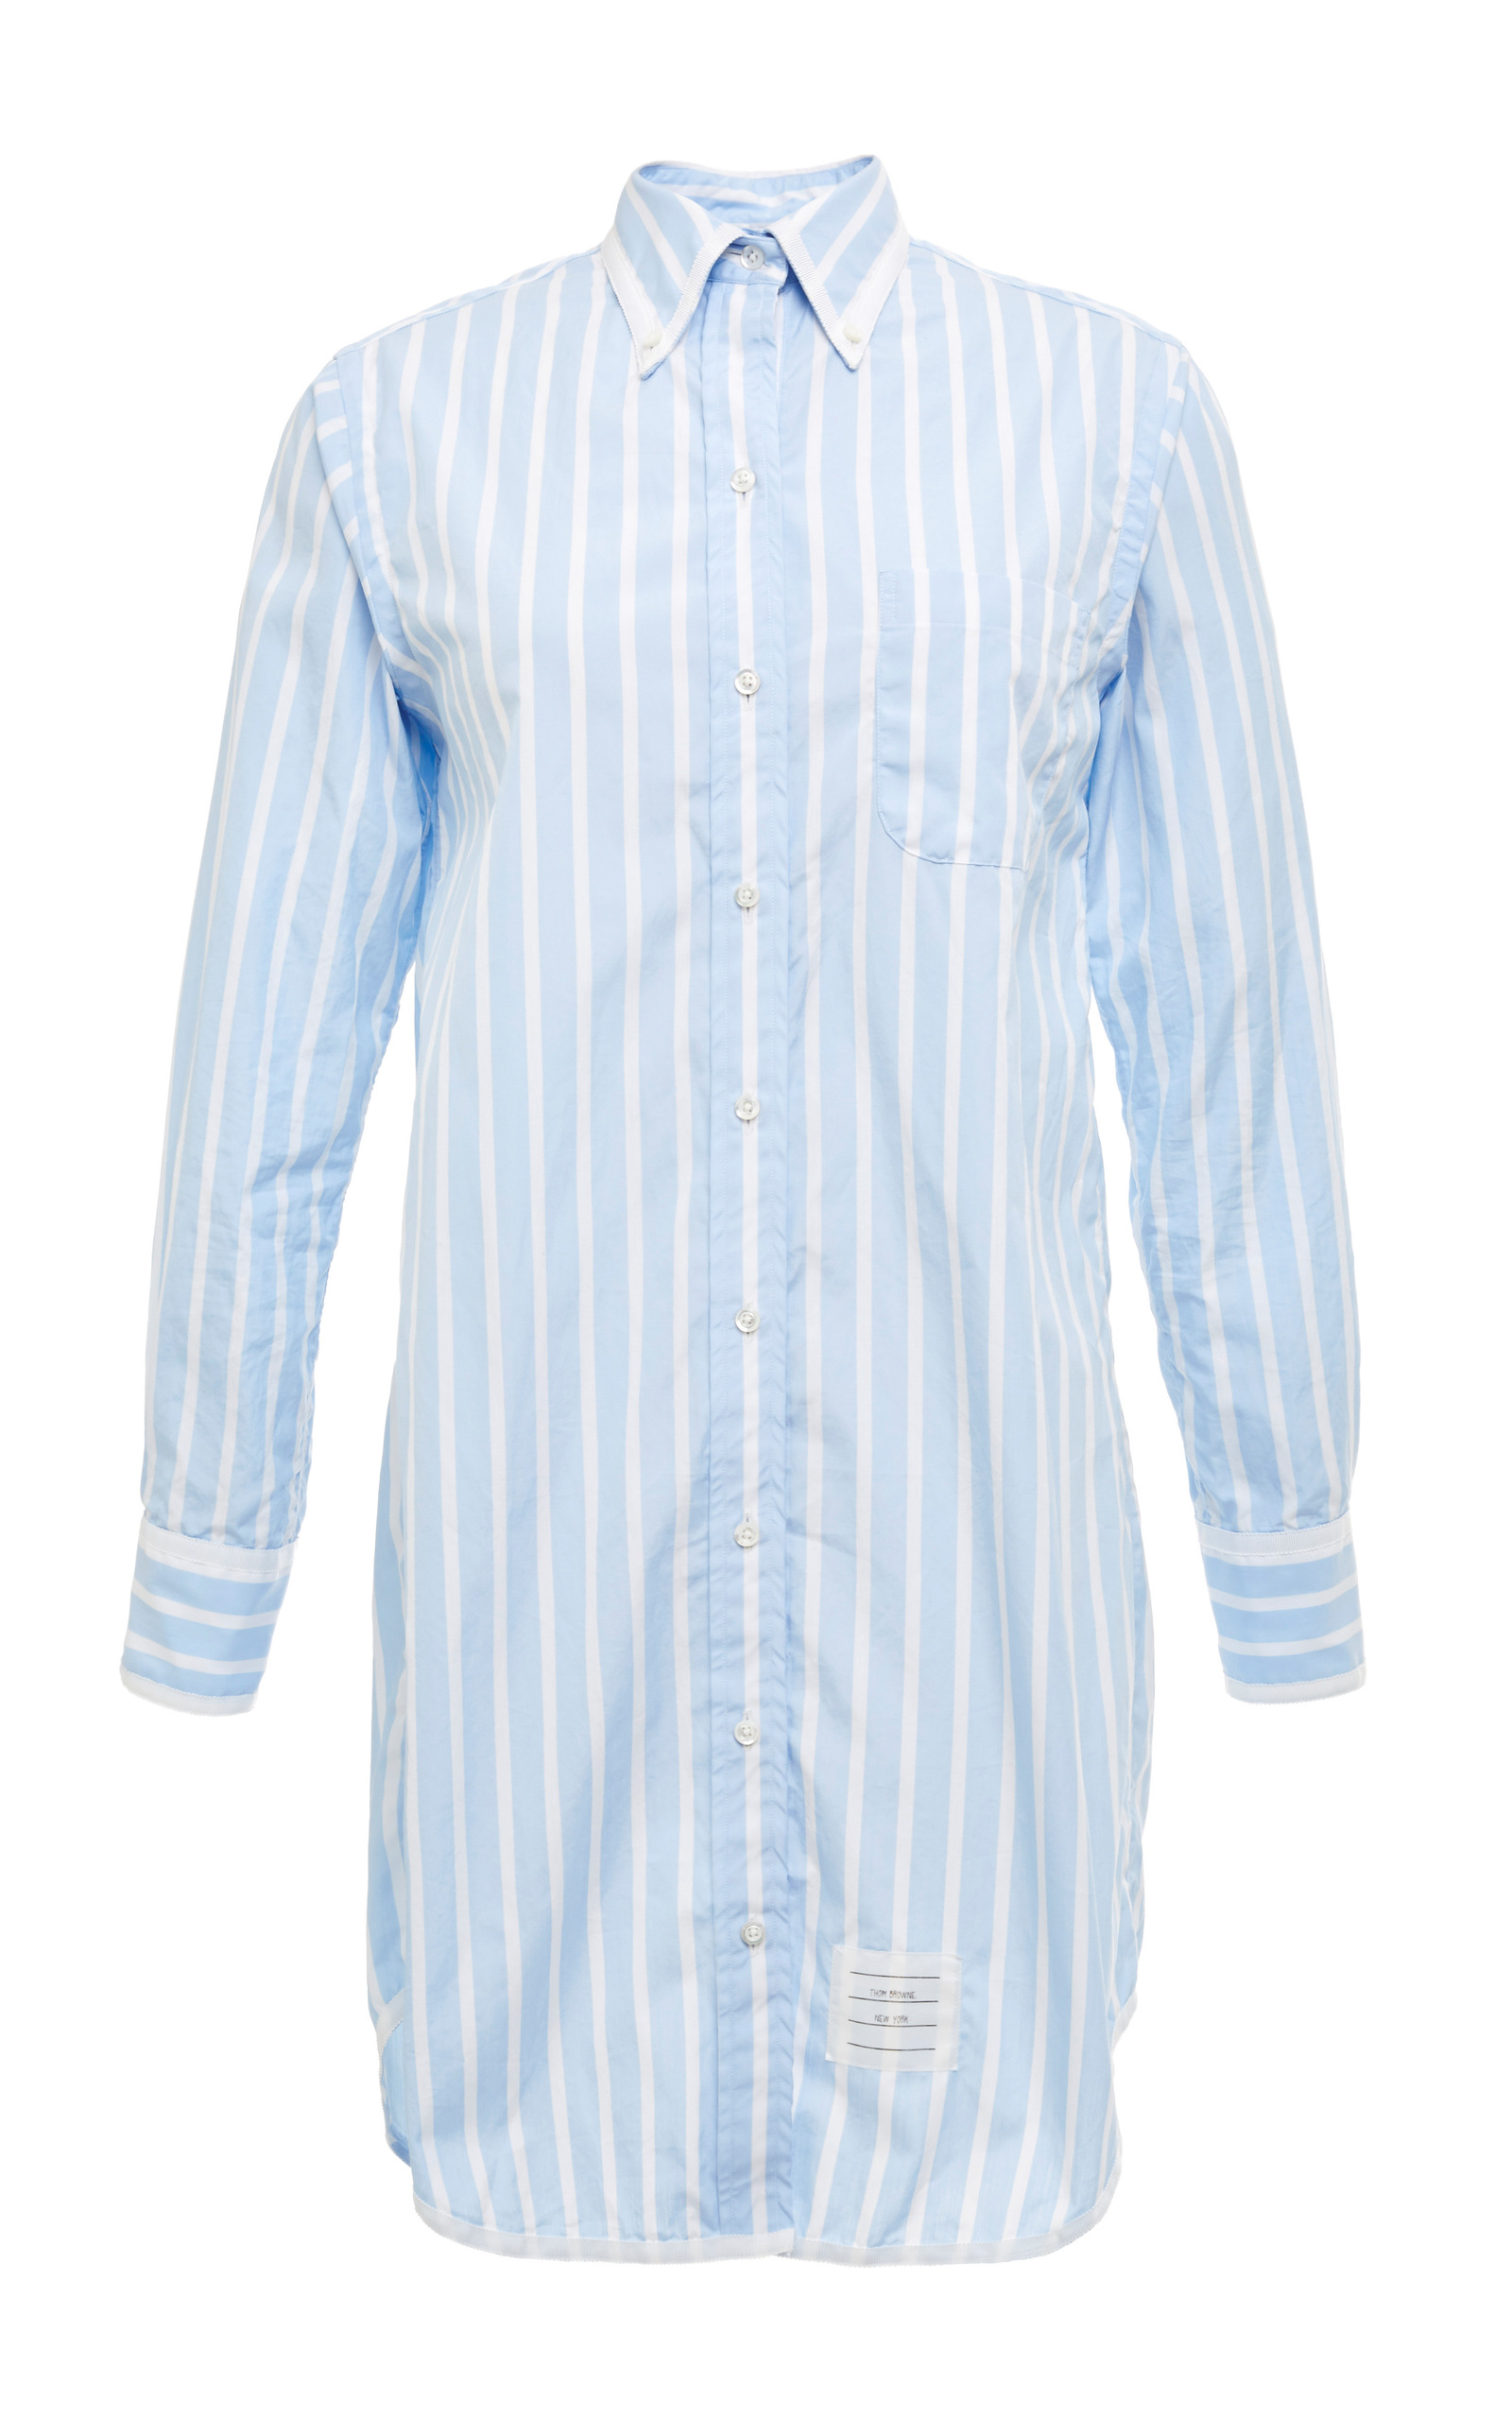 bcf3434752867 ... Sleeve Classic Long Shirt Dress In Light Blue With White Stripes.  CLOSE. Loading